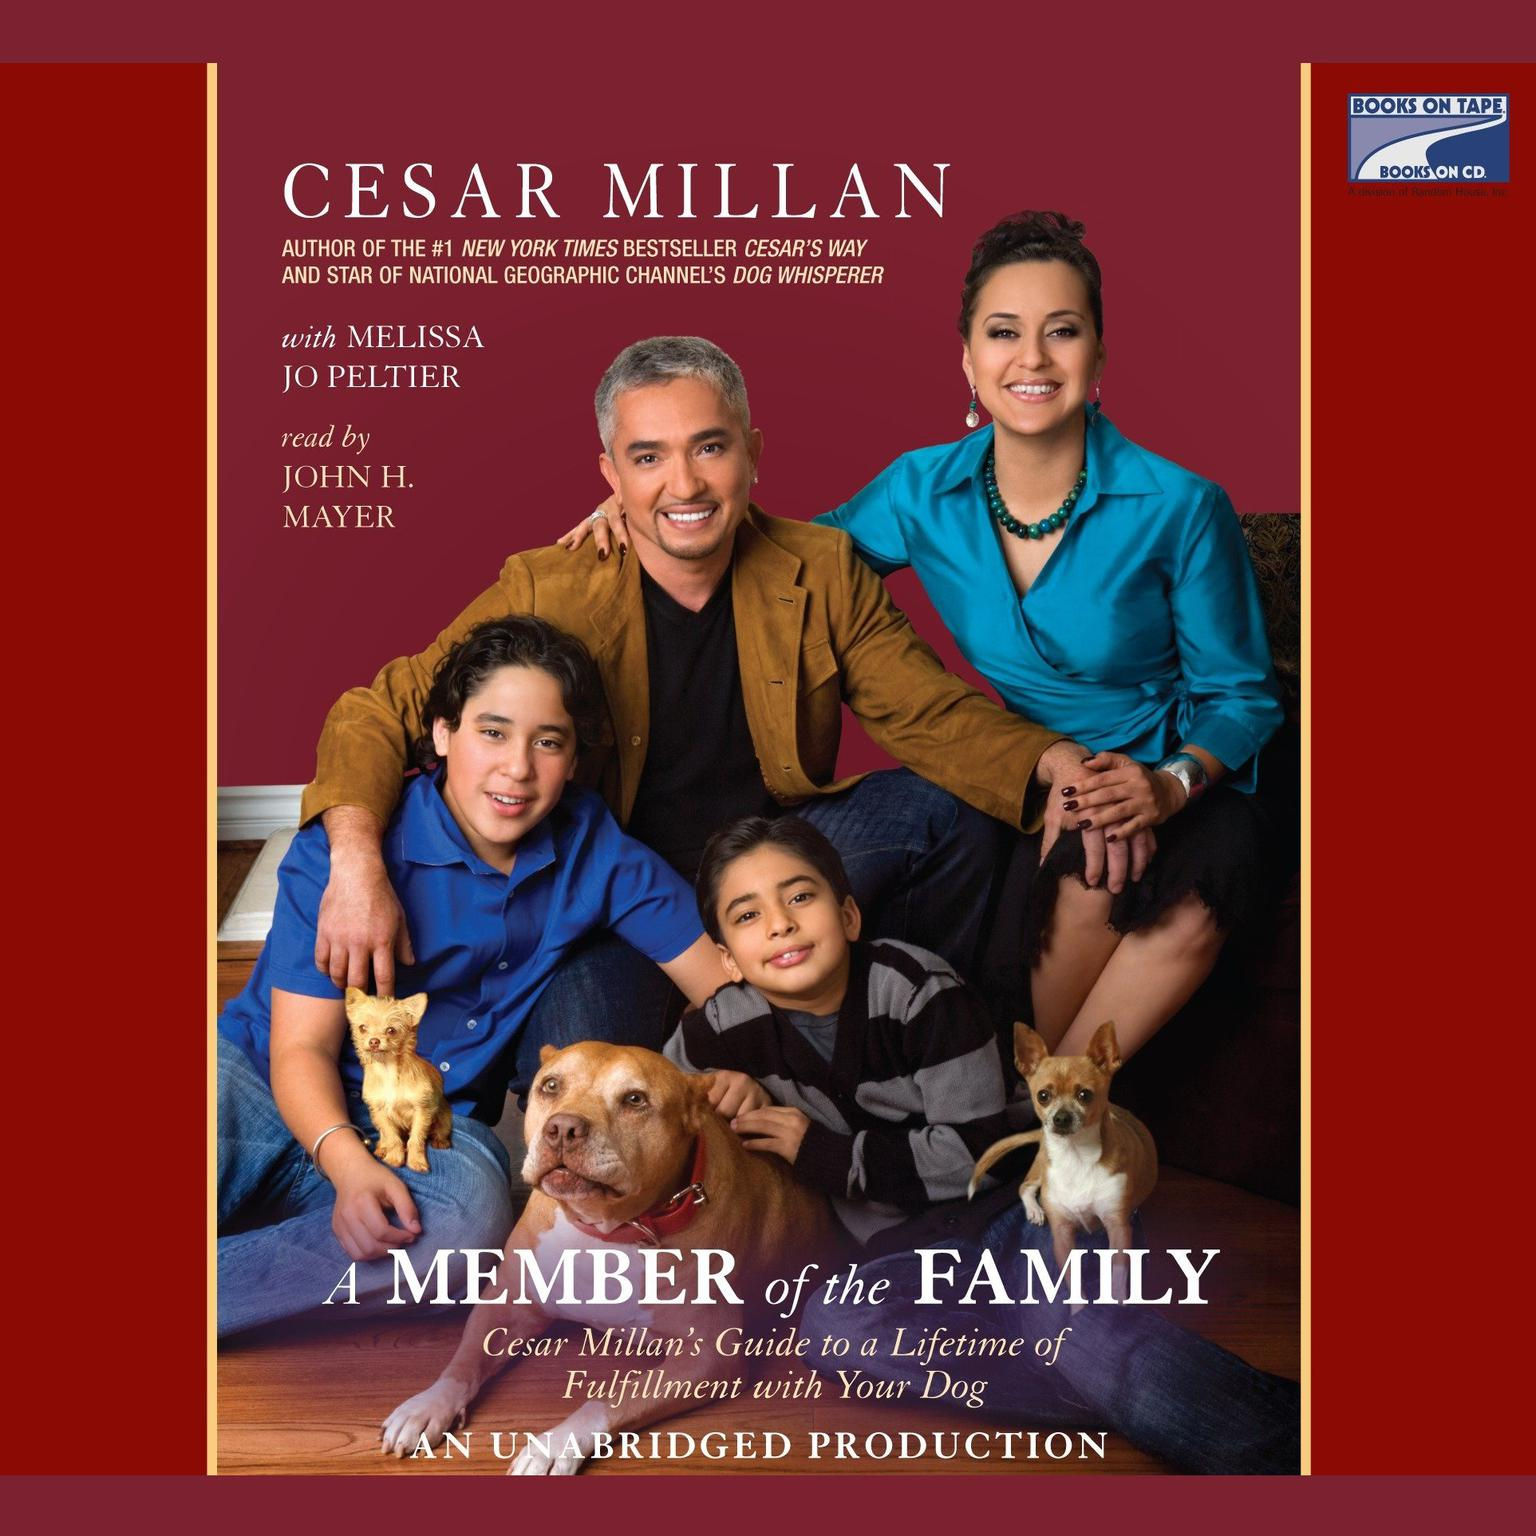 Printable A Member of the Family: Cesar Millan's Guide to a Lifetime of Fulfillment with Your Dog Audiobook Cover Art